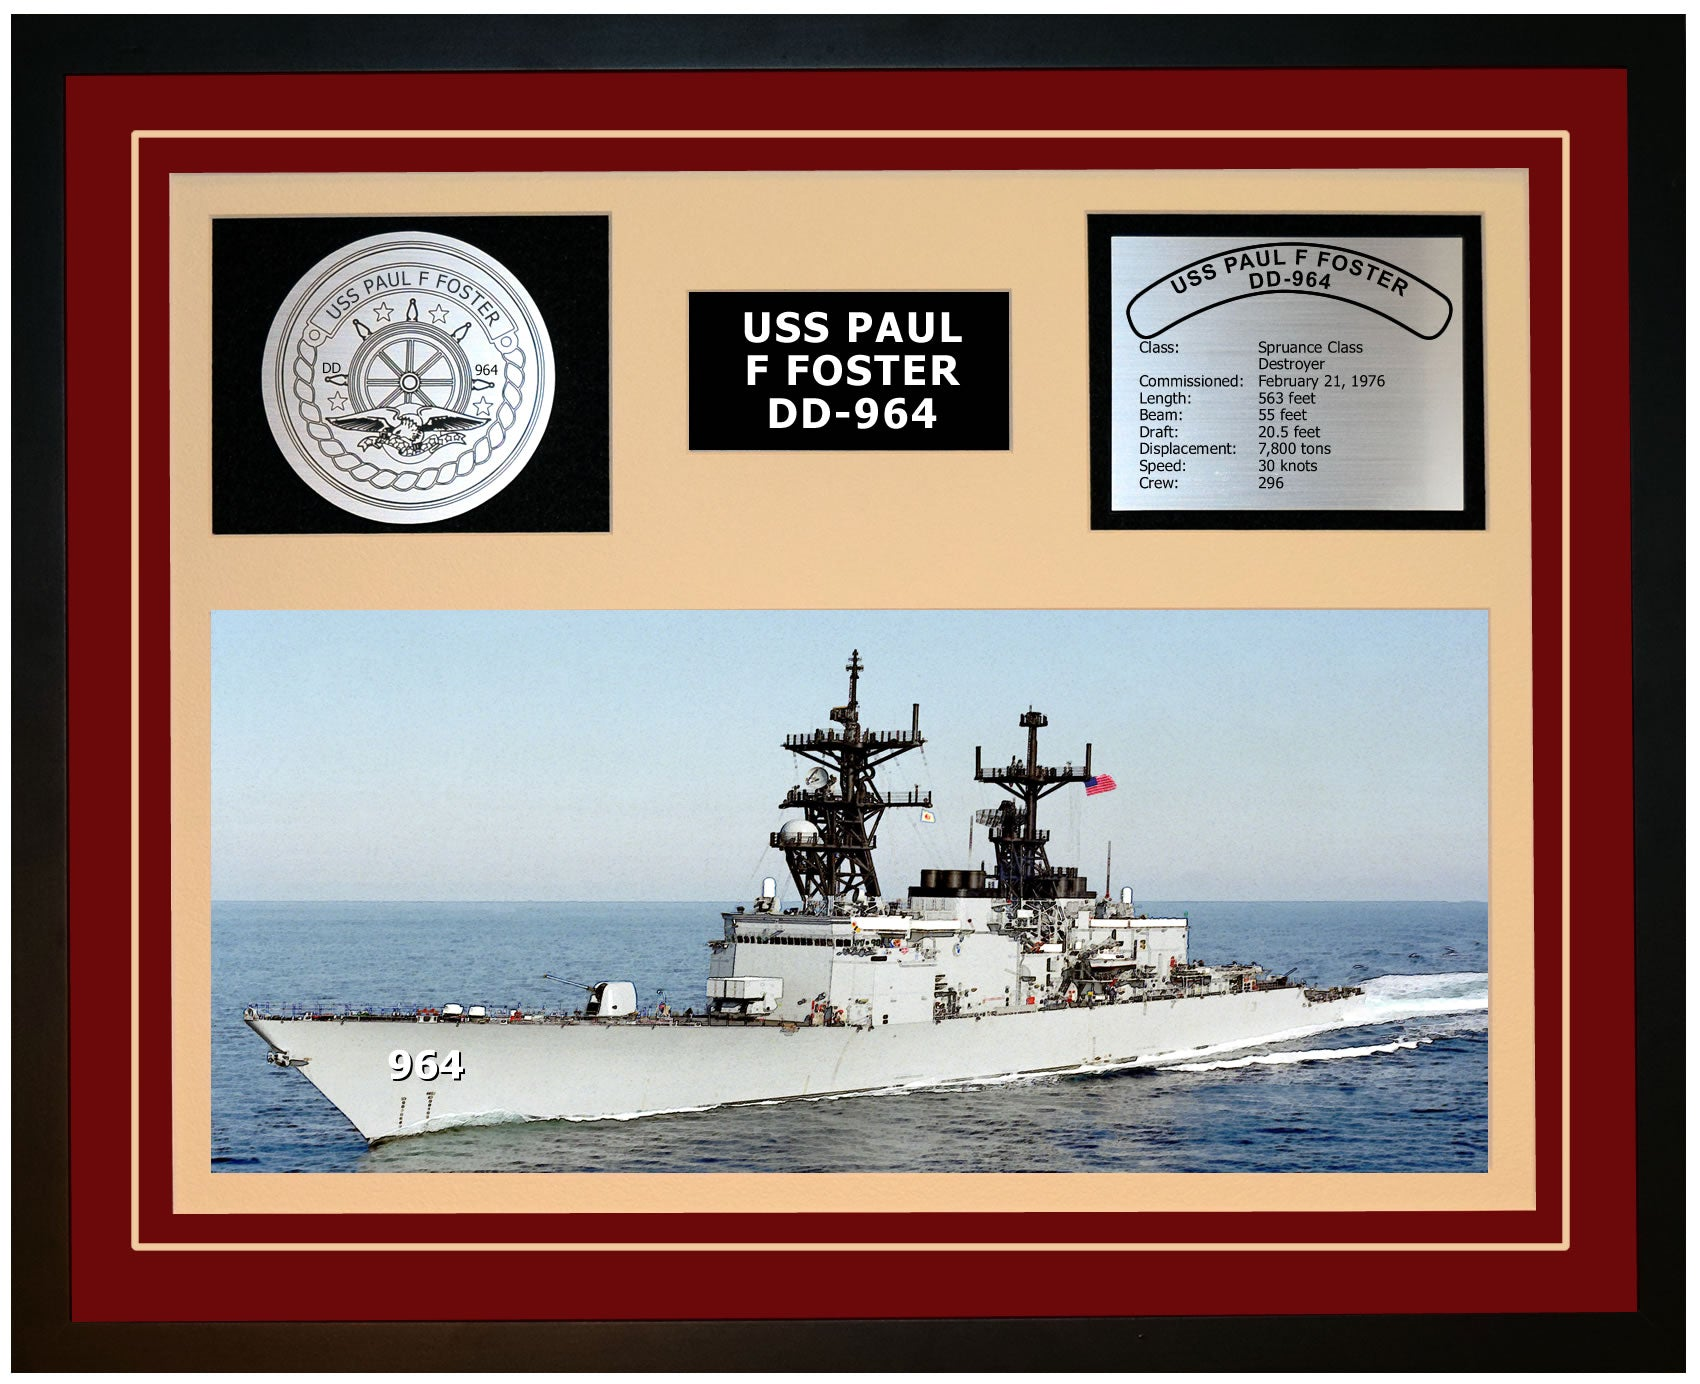 USS PAUL F FOSTER DD-964 Framed Navy Ship Display Burgundy